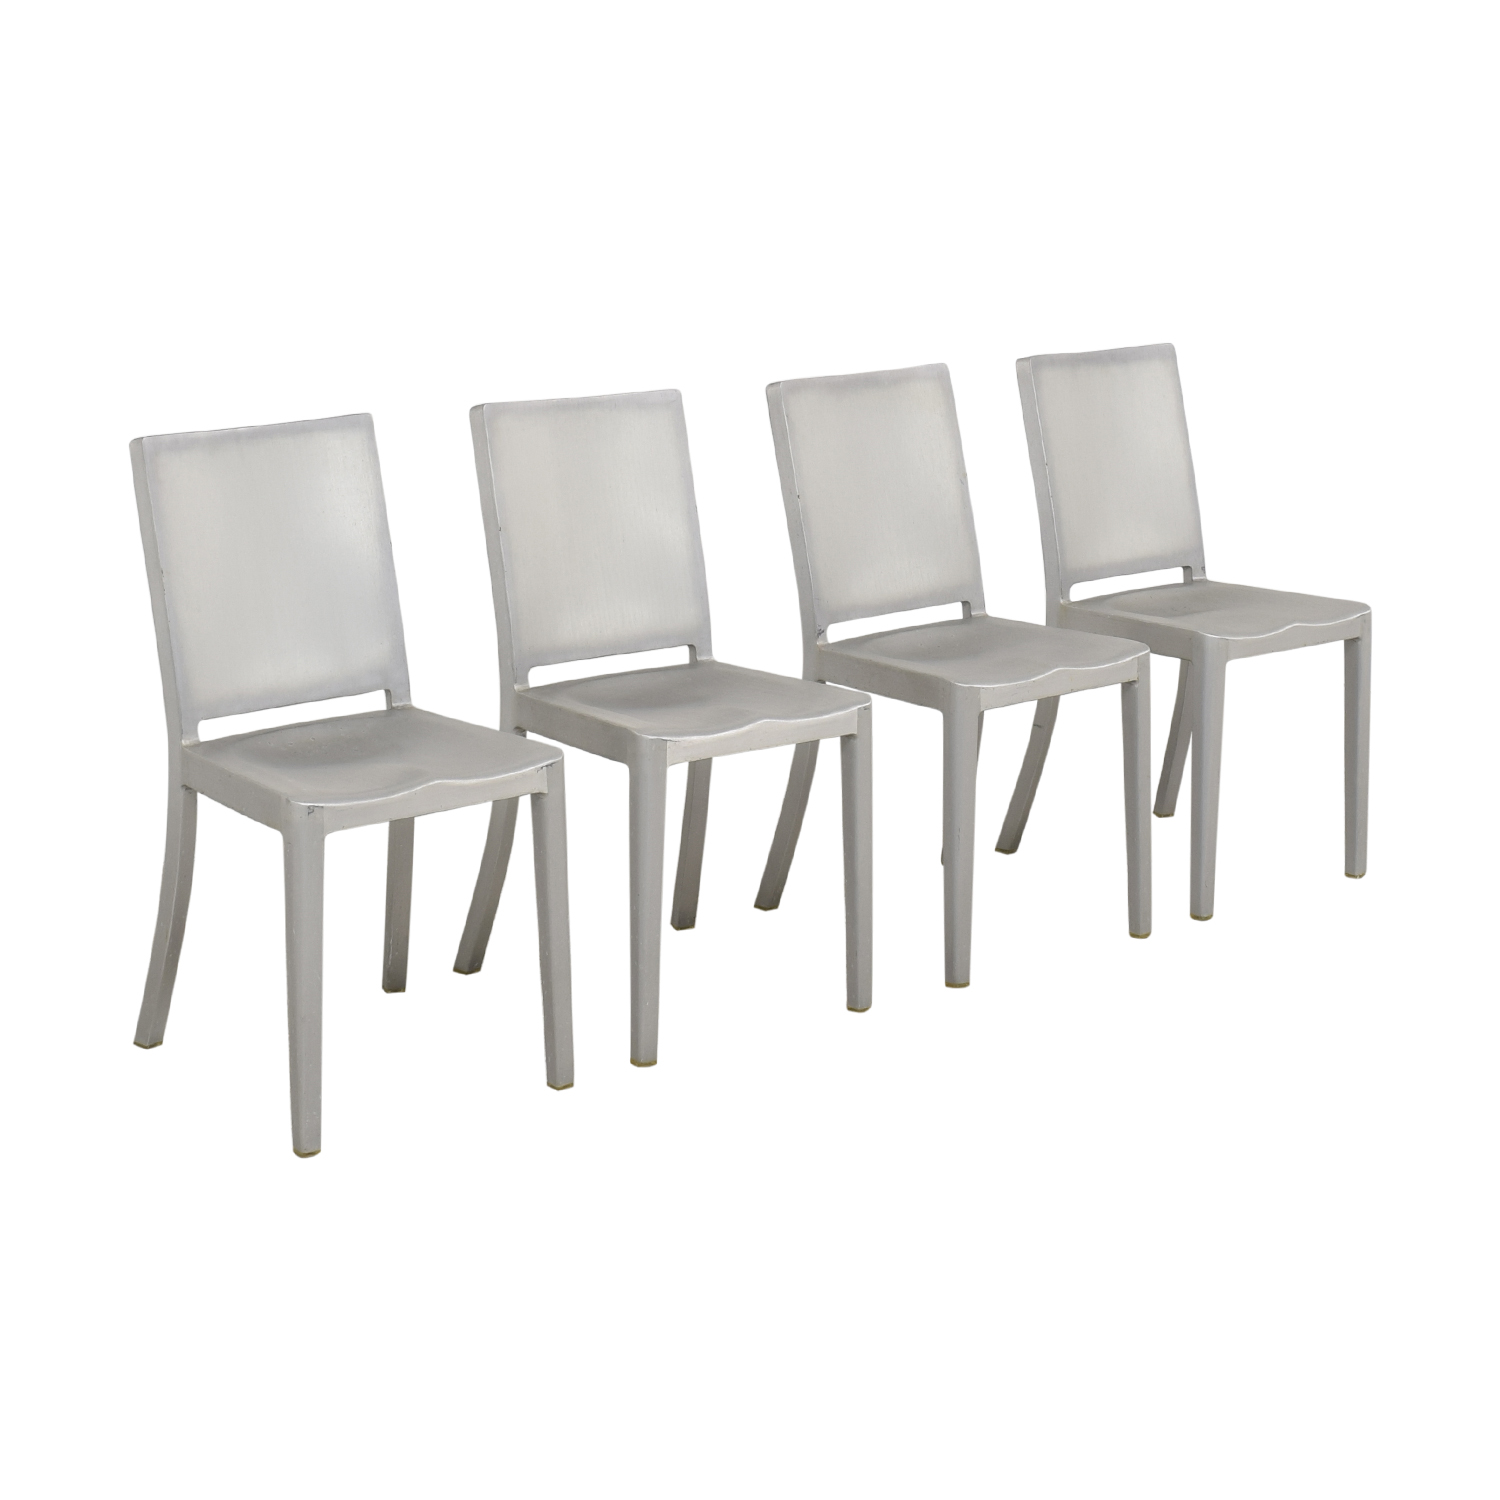 Emeco Emeco by Philippe Starck Hudson Chairs ma